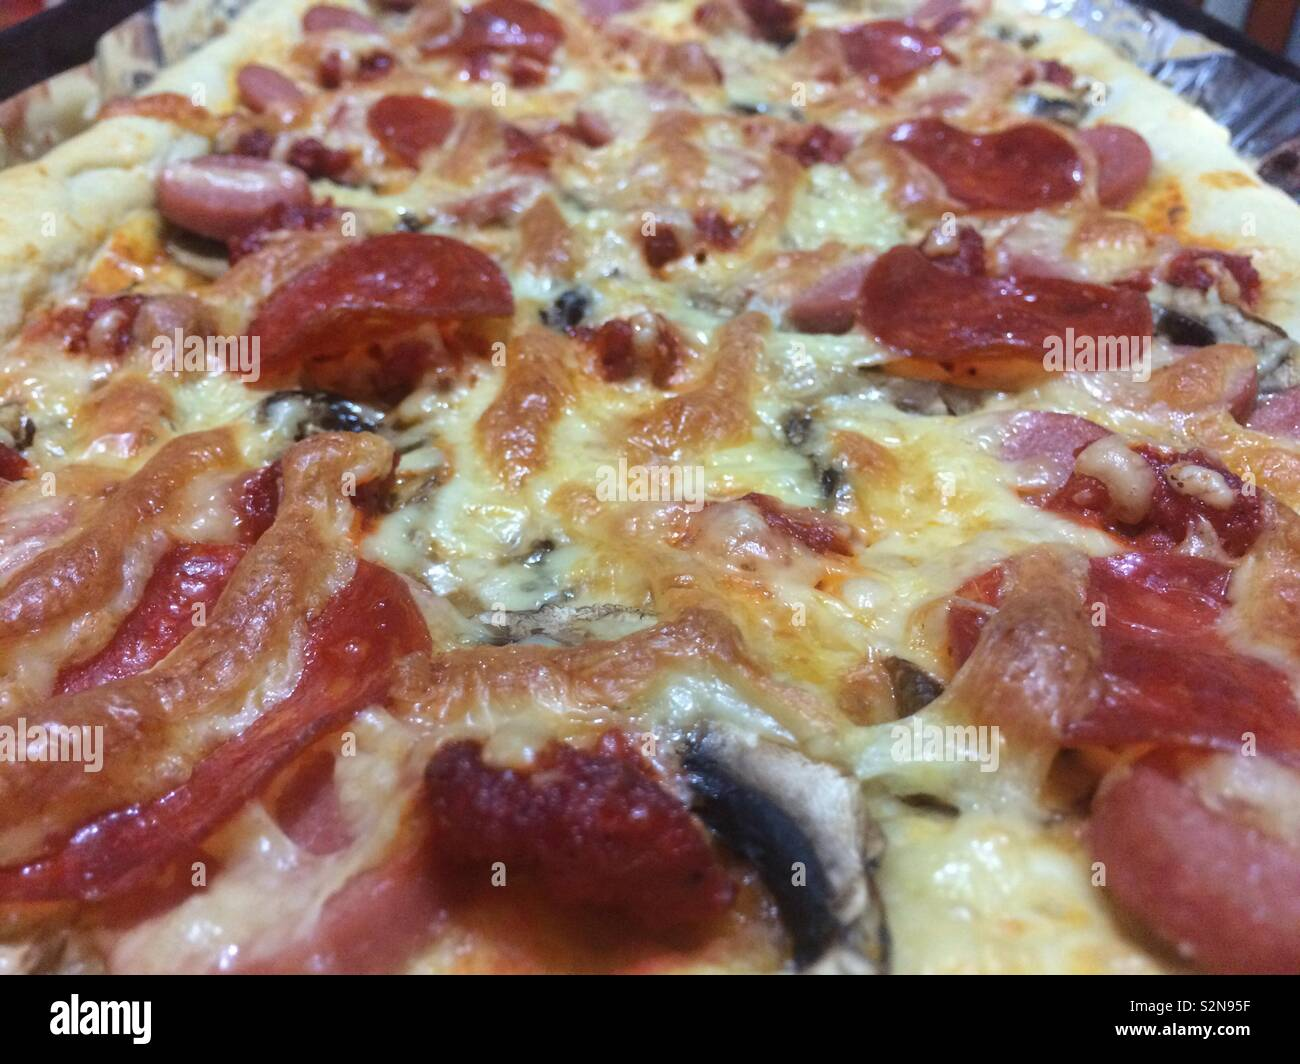 Pizza with pepperoni and mushrooms - Stock Image